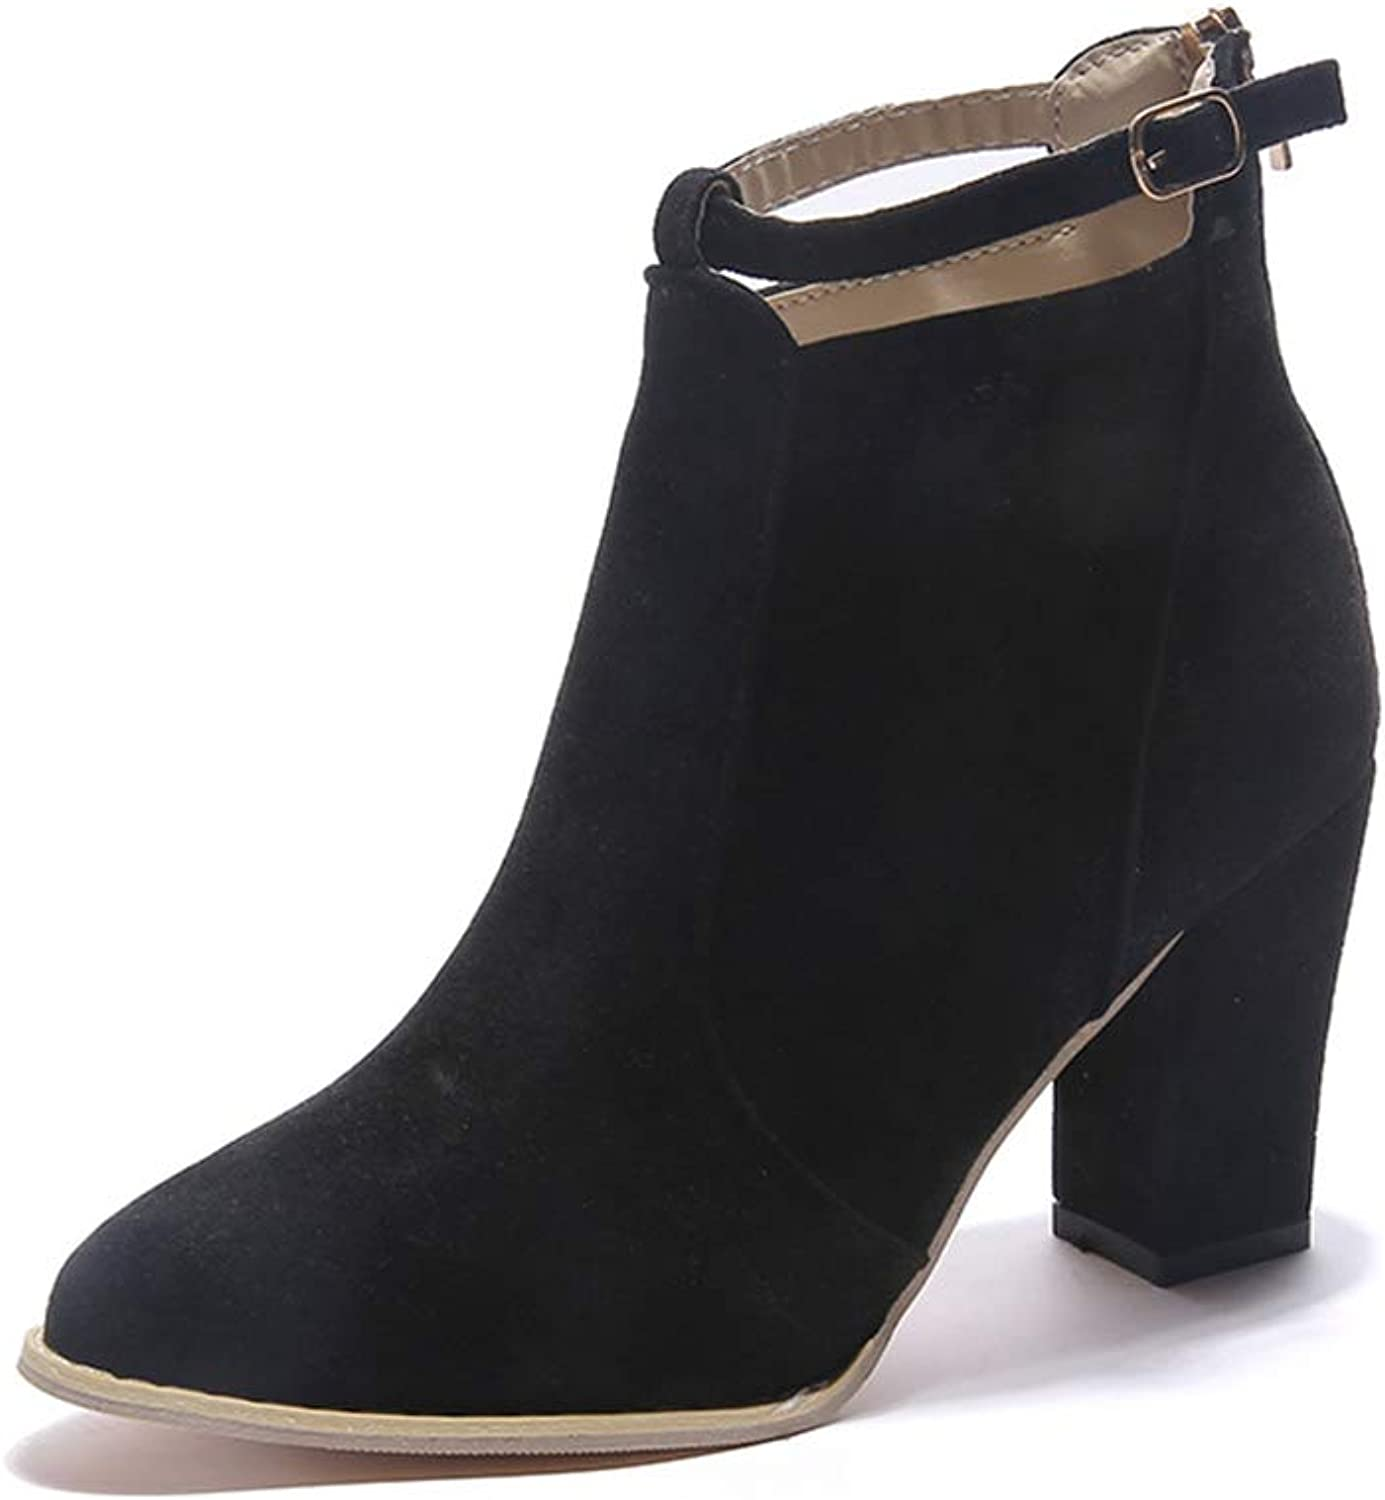 Smart.A Womens Stylish Buckle Strap Dress Ankle Bootie